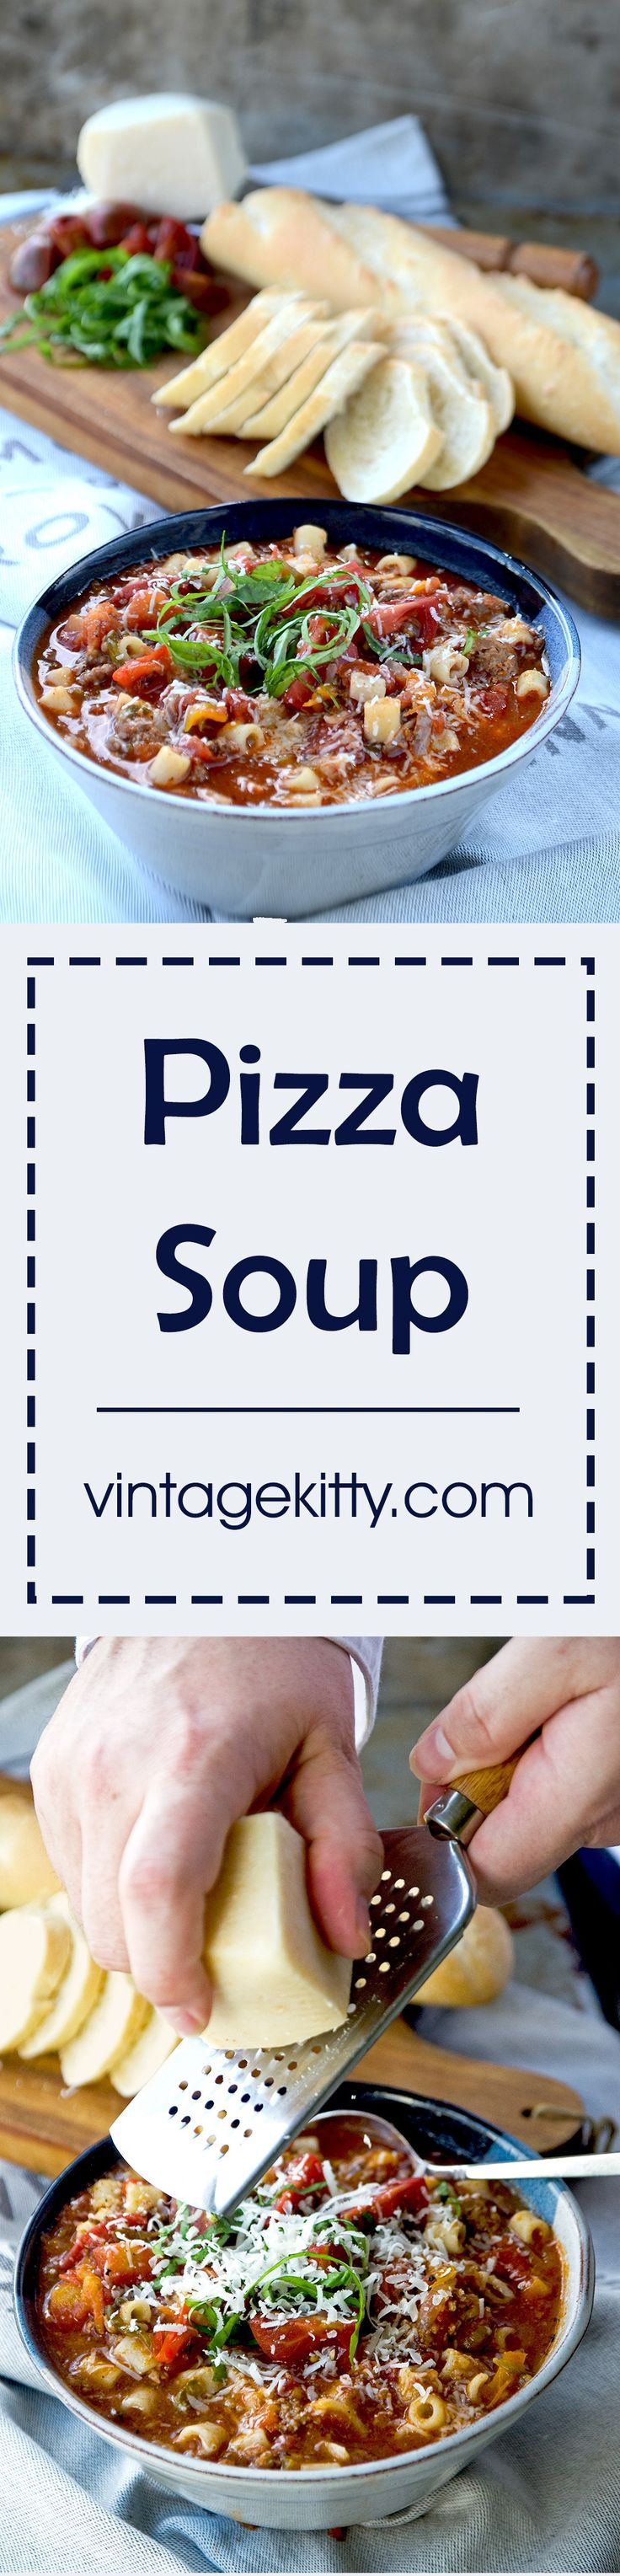 Pizza Soup is a hearty, robust tomato soup filled with Italian flavors and ingredients. It's supremely delicious and can be served as an appetizer or as an entree with a side salad or grilled cheese sandwich.   vintagekitty.com